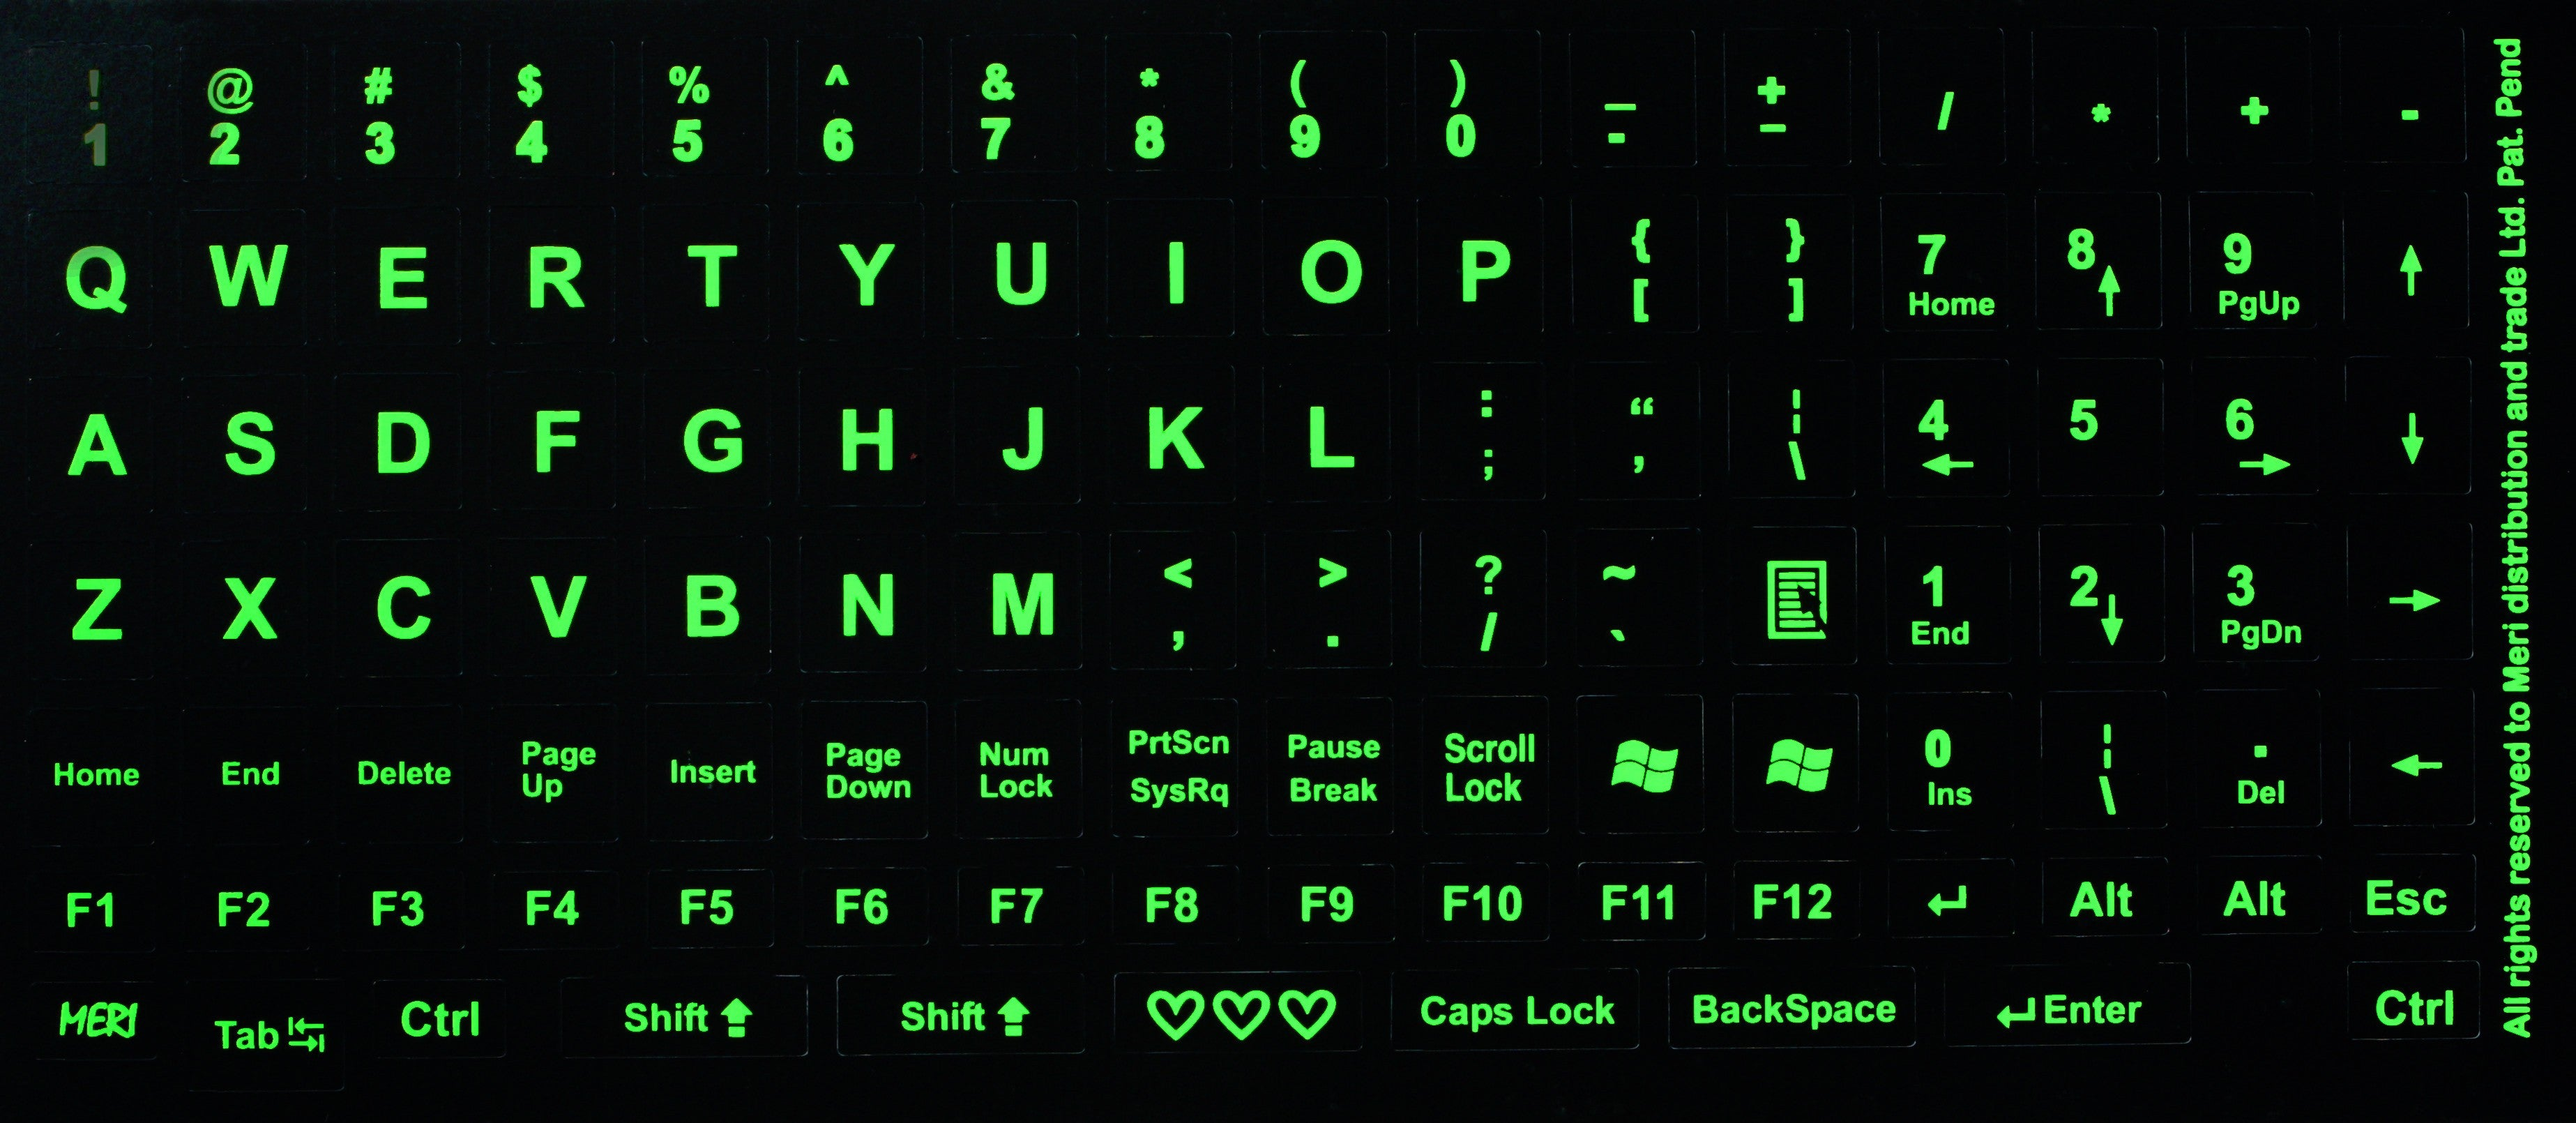 image relating to Printable Keyboard Stickers identified as Huge Neon Keyboard Substitute Stickers Royal Environmentally friendly Industry